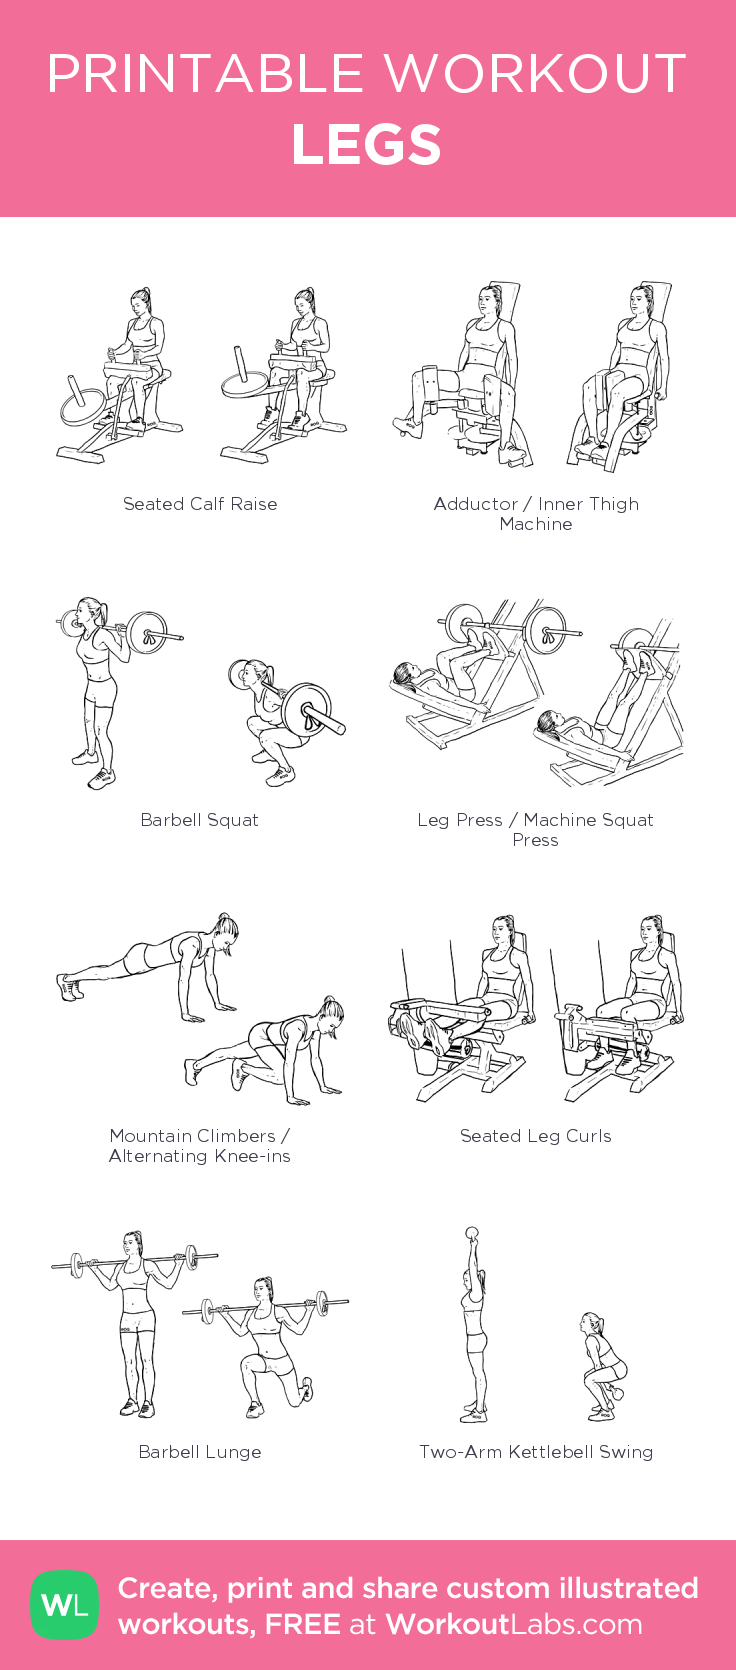 LEGS– My Custom Exercise Plan Created At WorkoutLabs.com